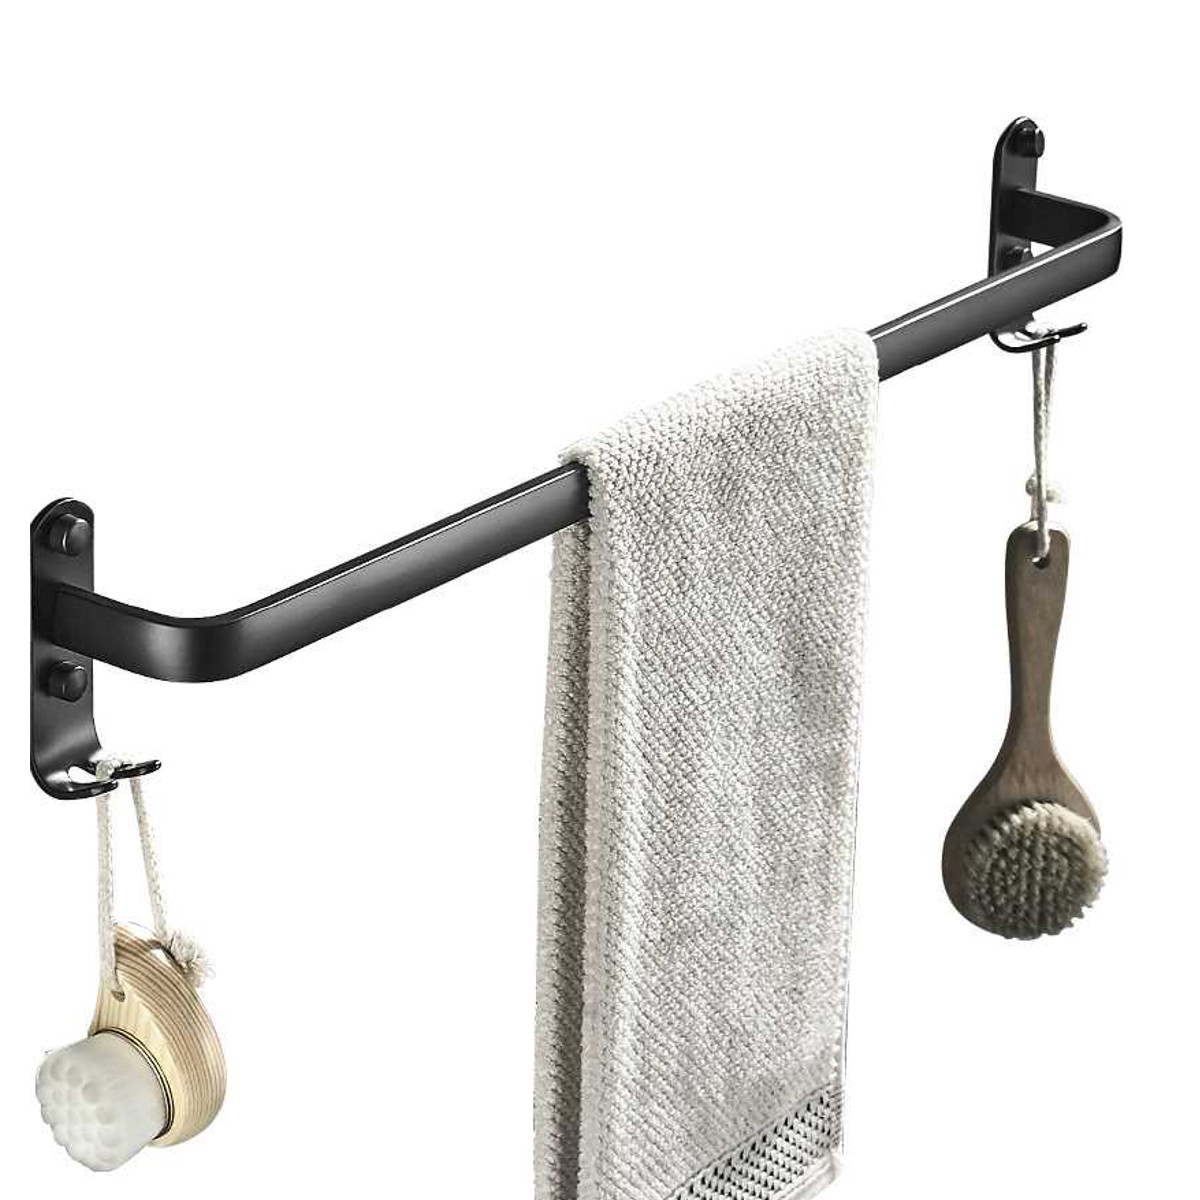 23 aluminum black hanging towel rack 1 2 tier wall mount fixed double towel bar storage holder with 2pcs hooks wall shelf bathroom accessories